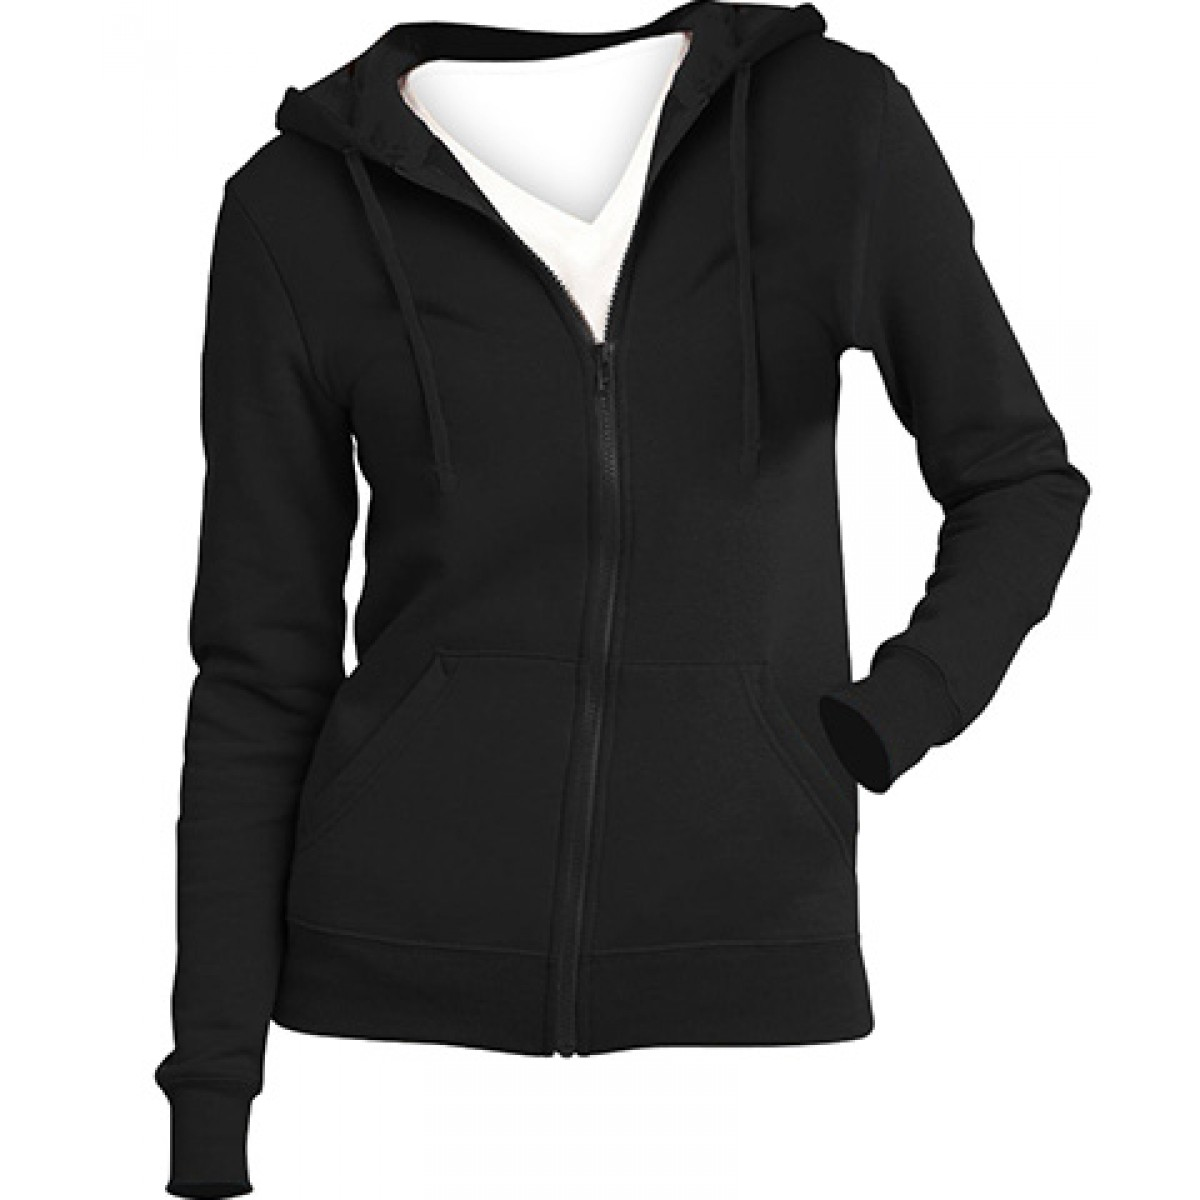 Juniors Full-Zip Hoodie-Black-3XL